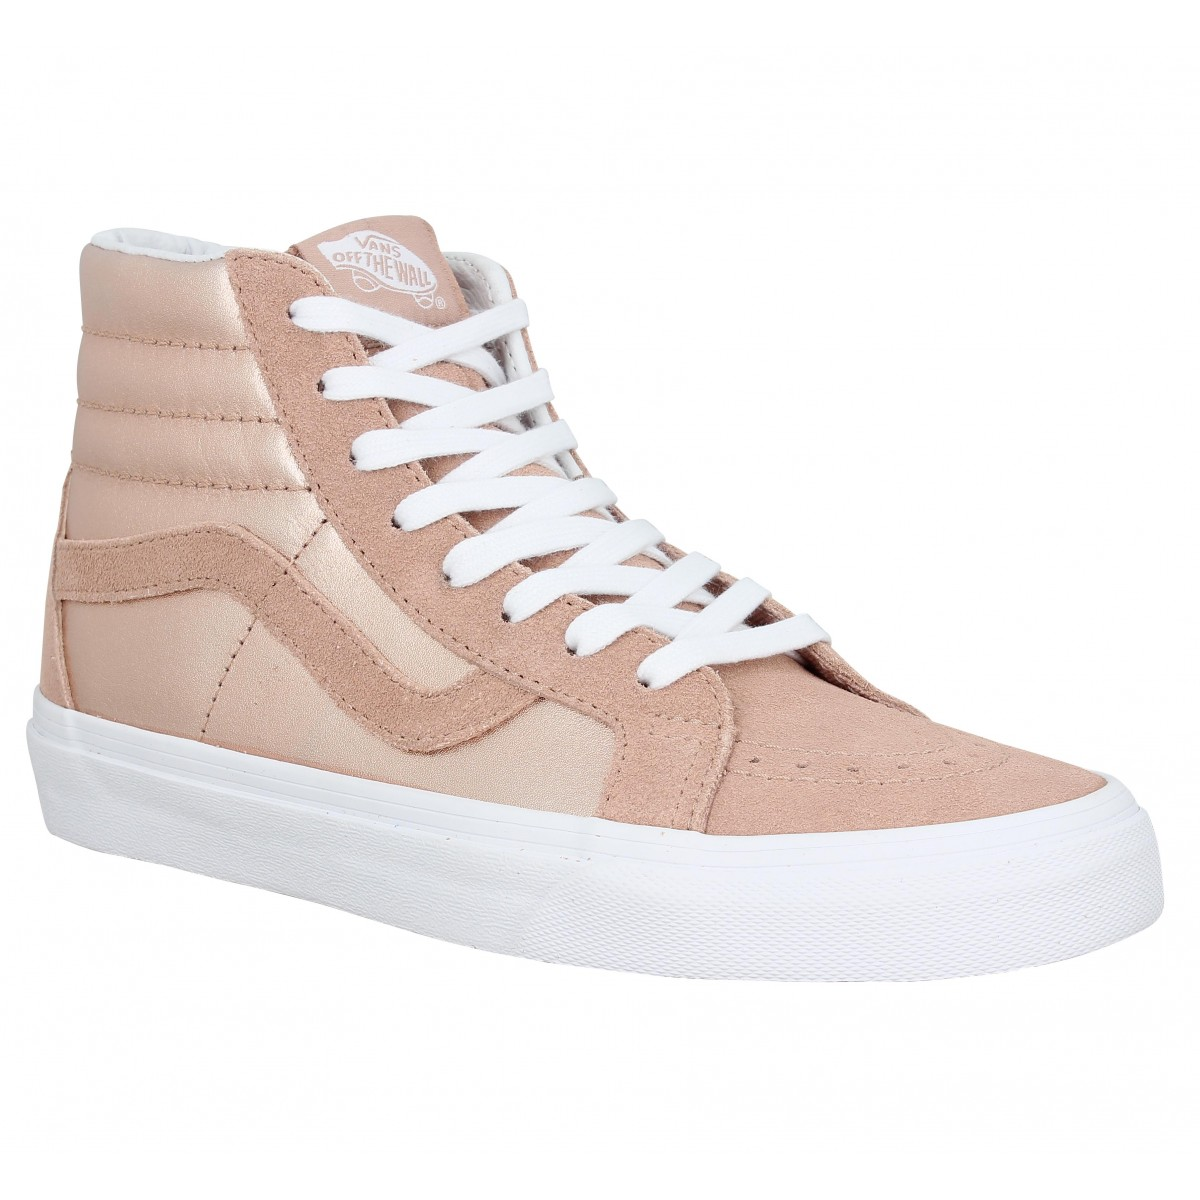 63d7f904d3 Baskets VANS SK8 Hi Reissue metallic cuir Femme Rose